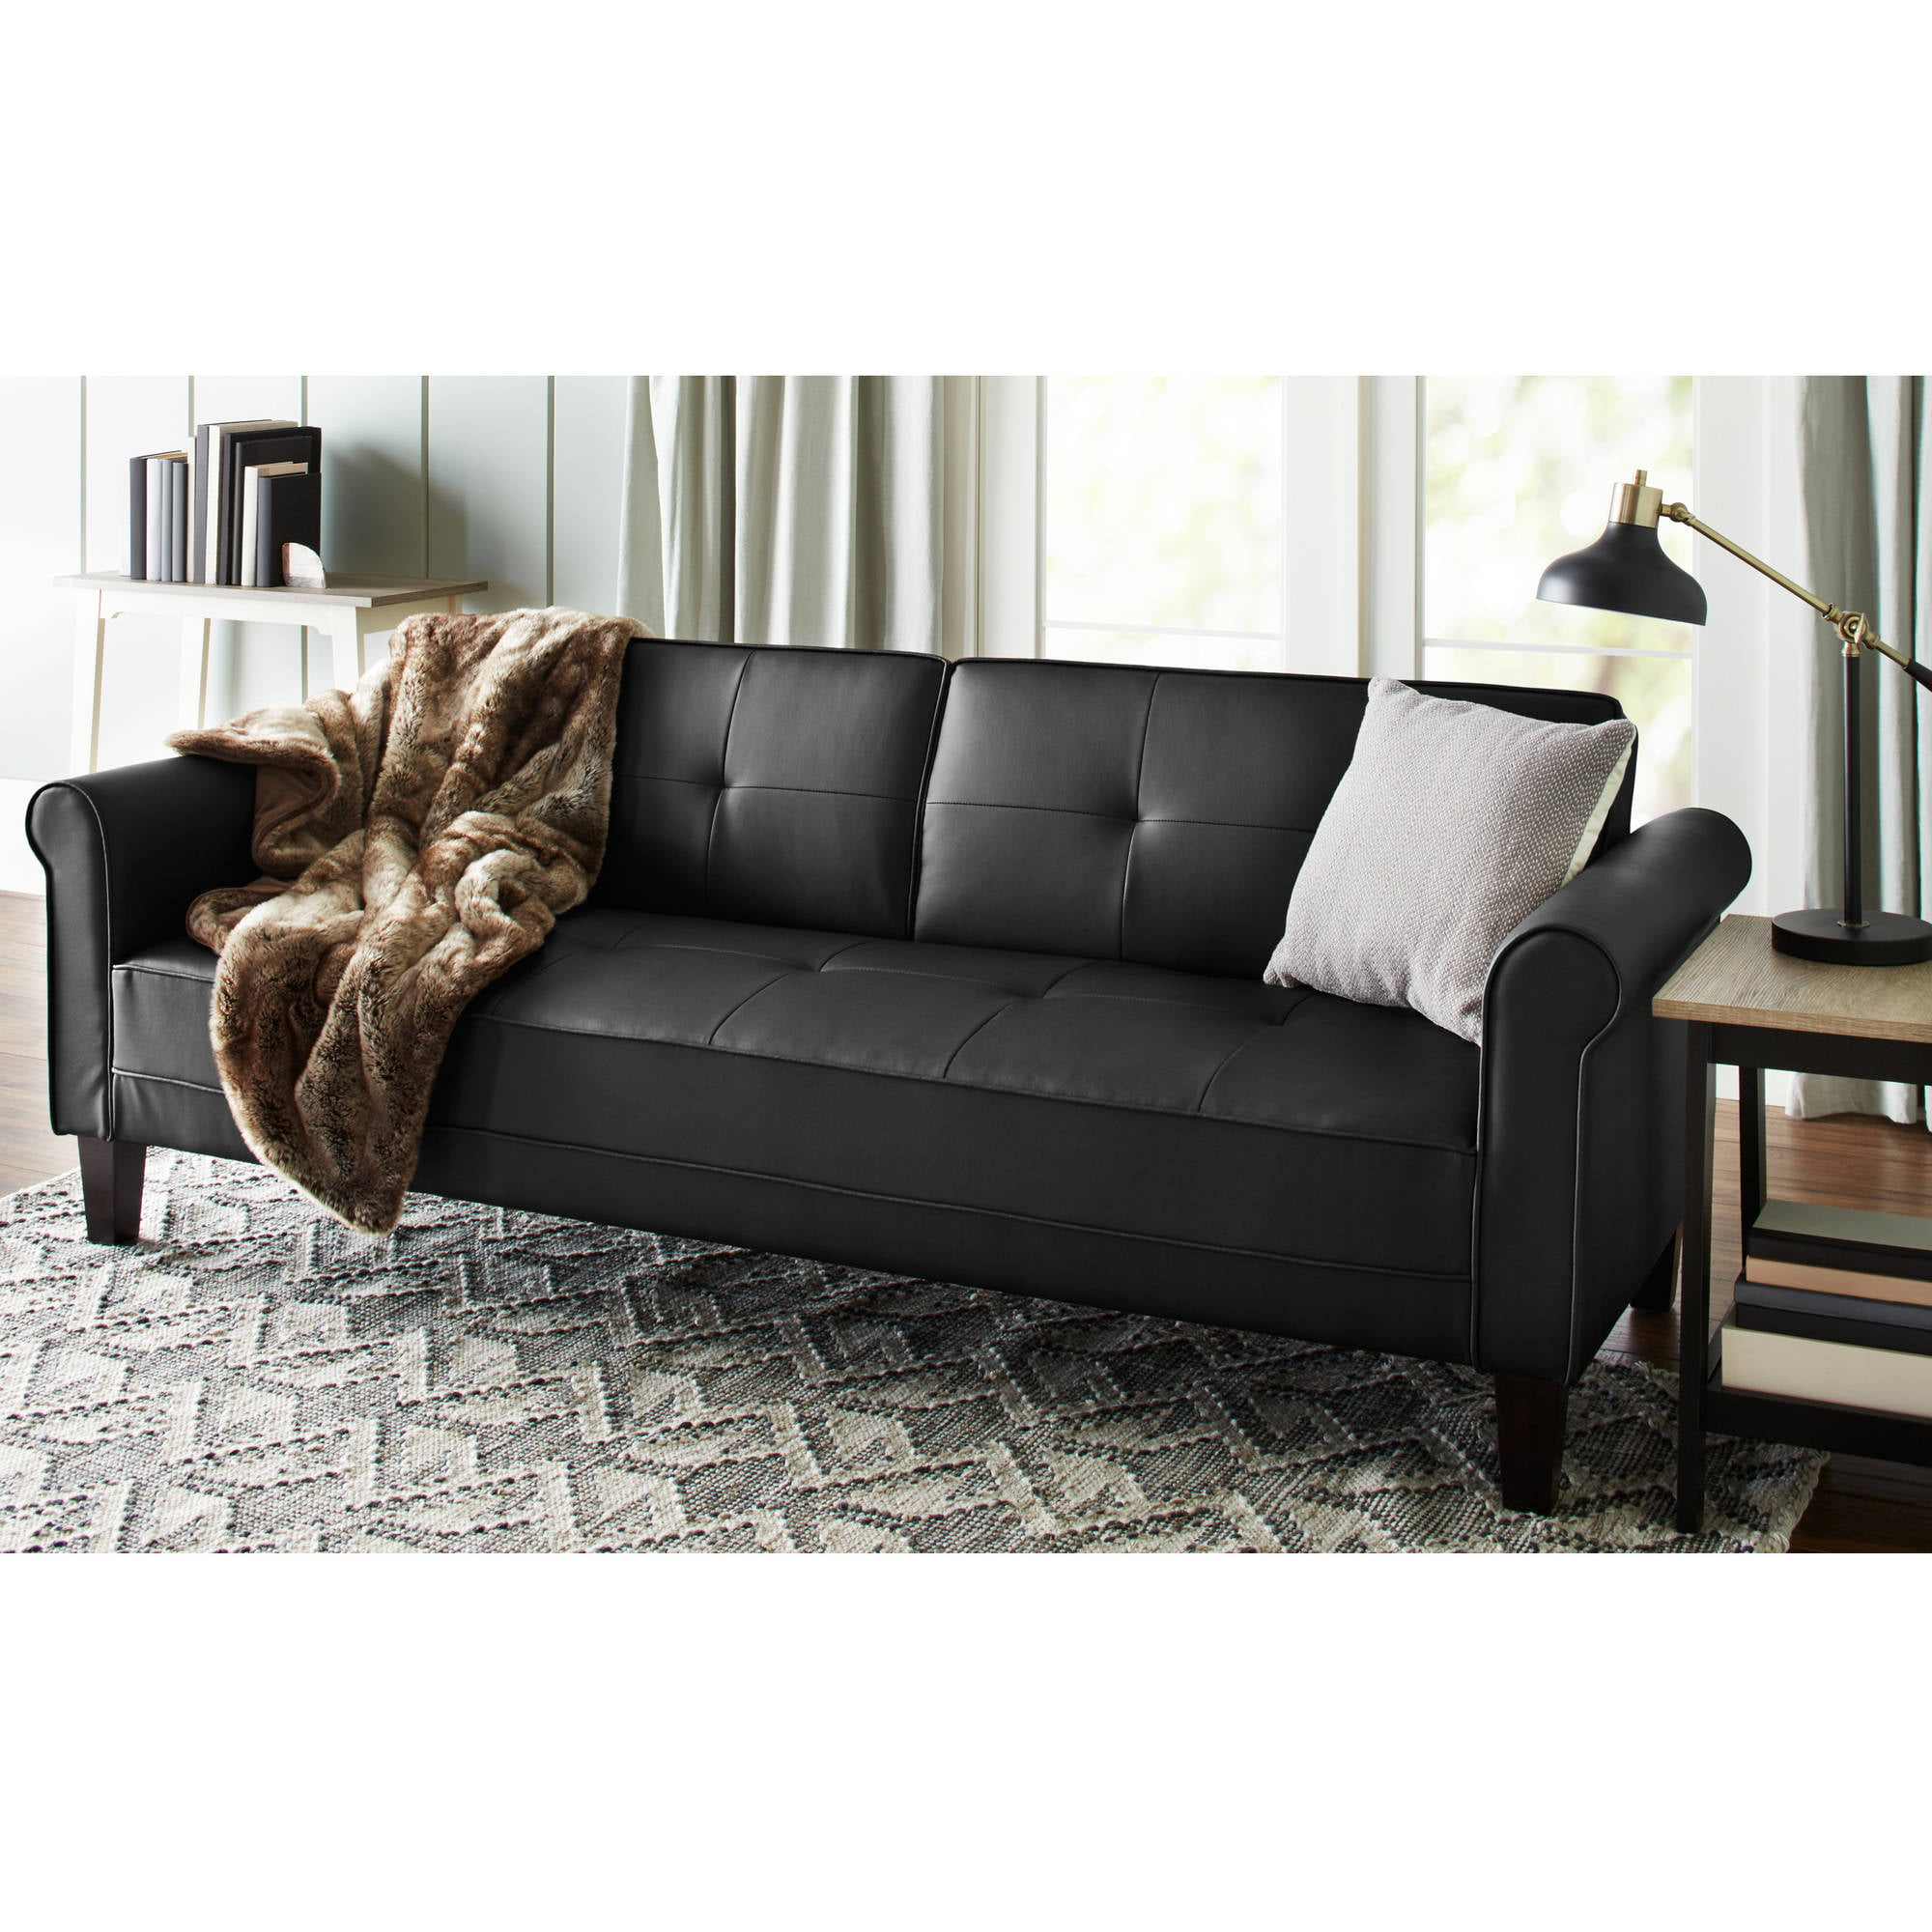 leather faux fold down futon sofa bed couch sleeper furniture lounge convertible walmartcom